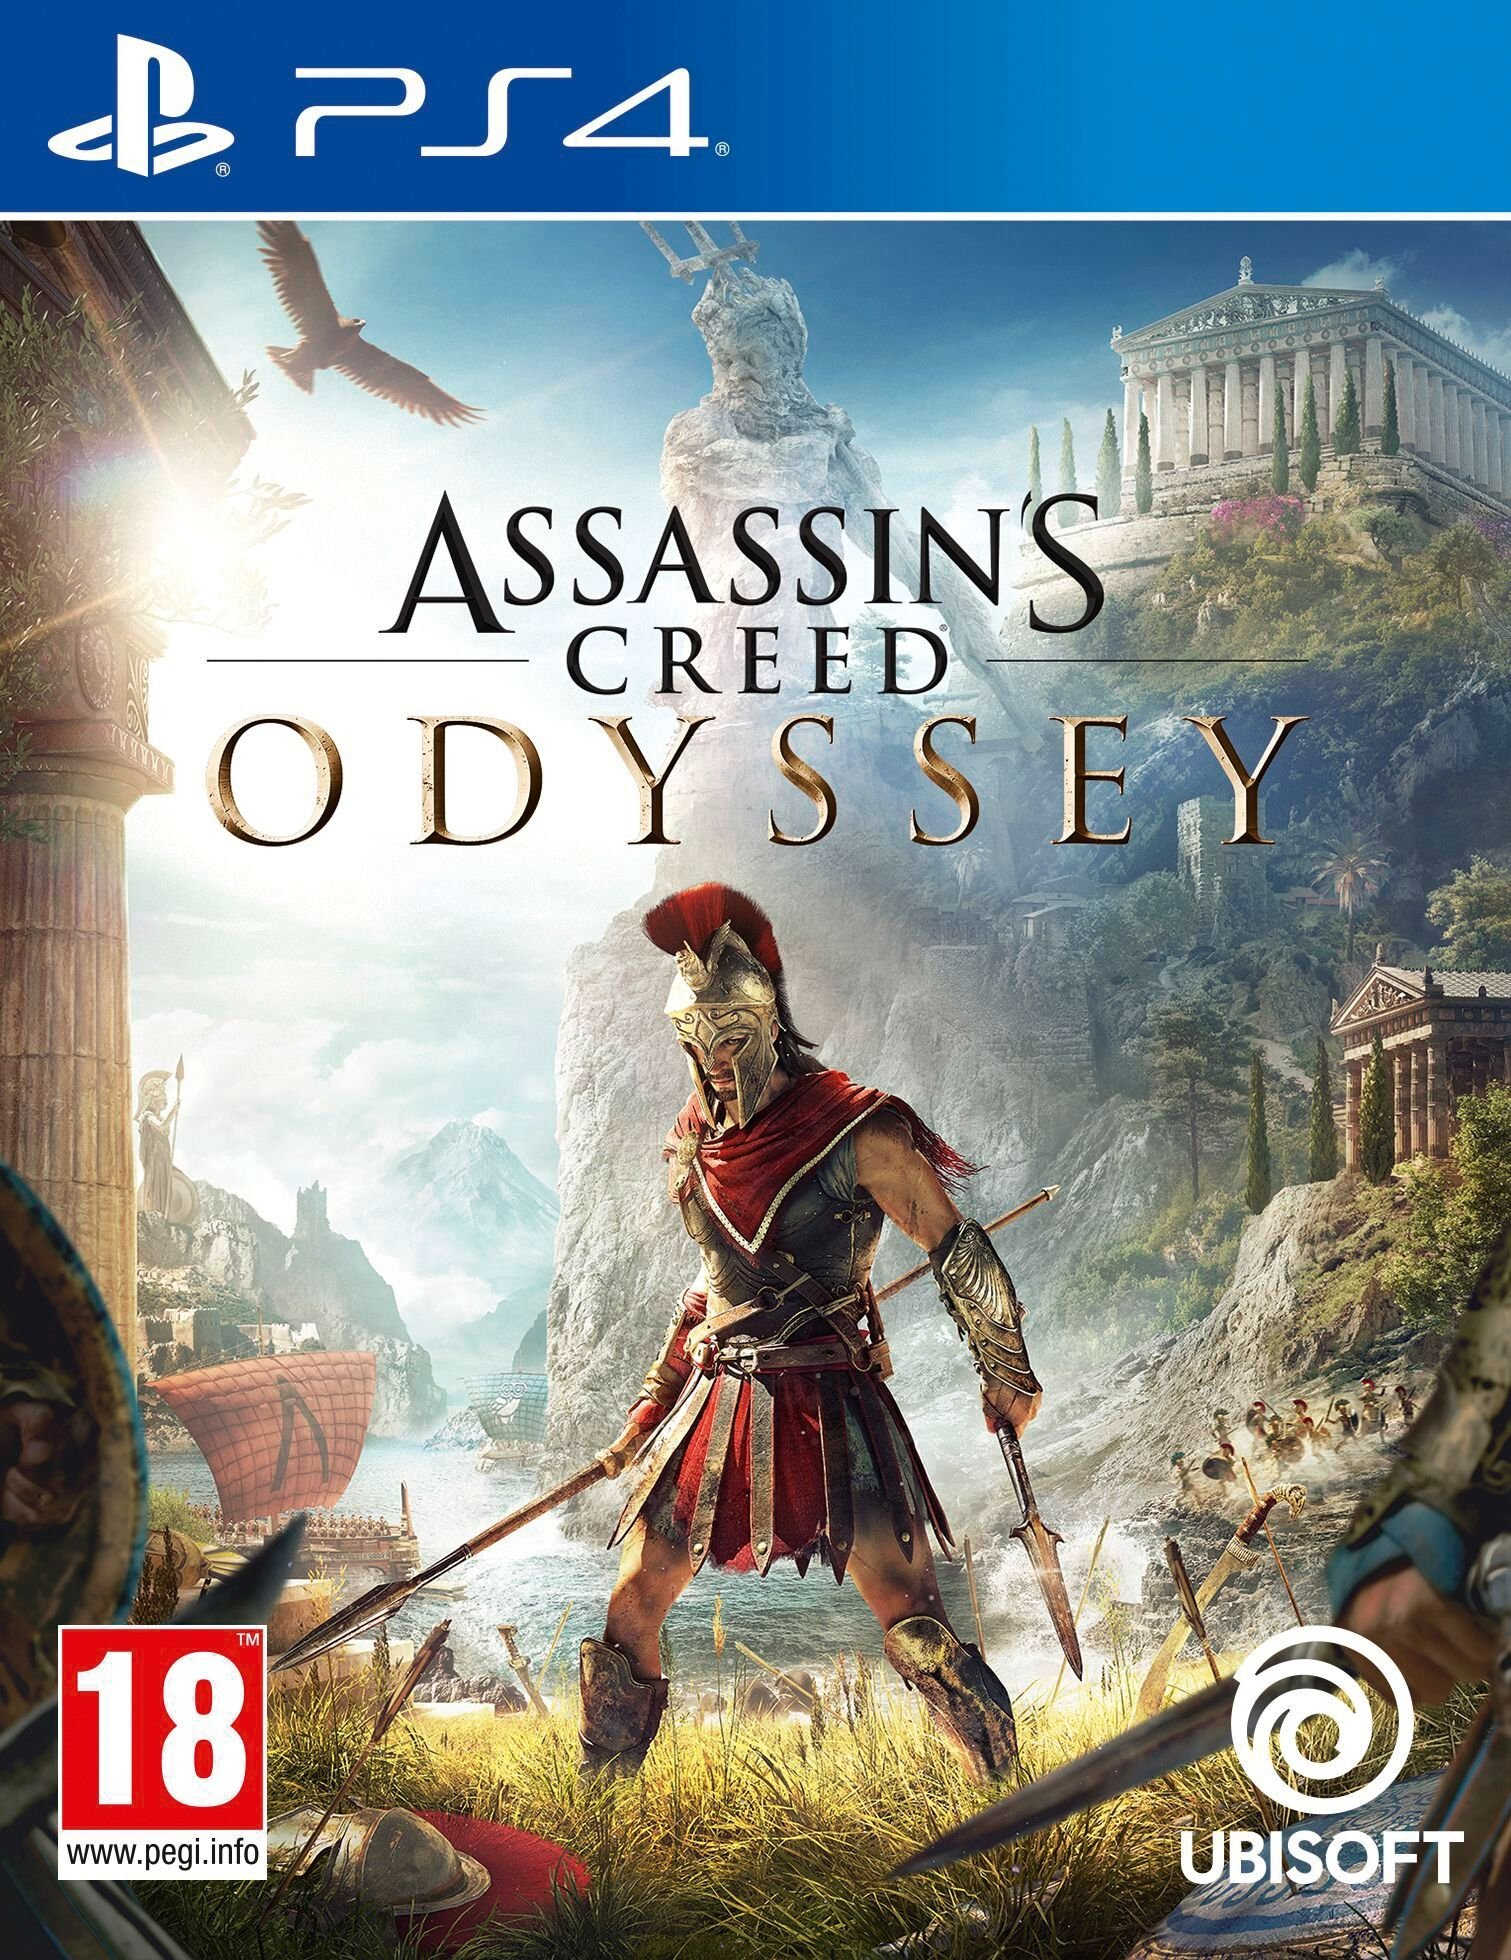 Assassin's Creed: Odyssey [PS4] 5.05 / 6.72 / 7.02 [EUR] (2018) [Русский] (v1.34)